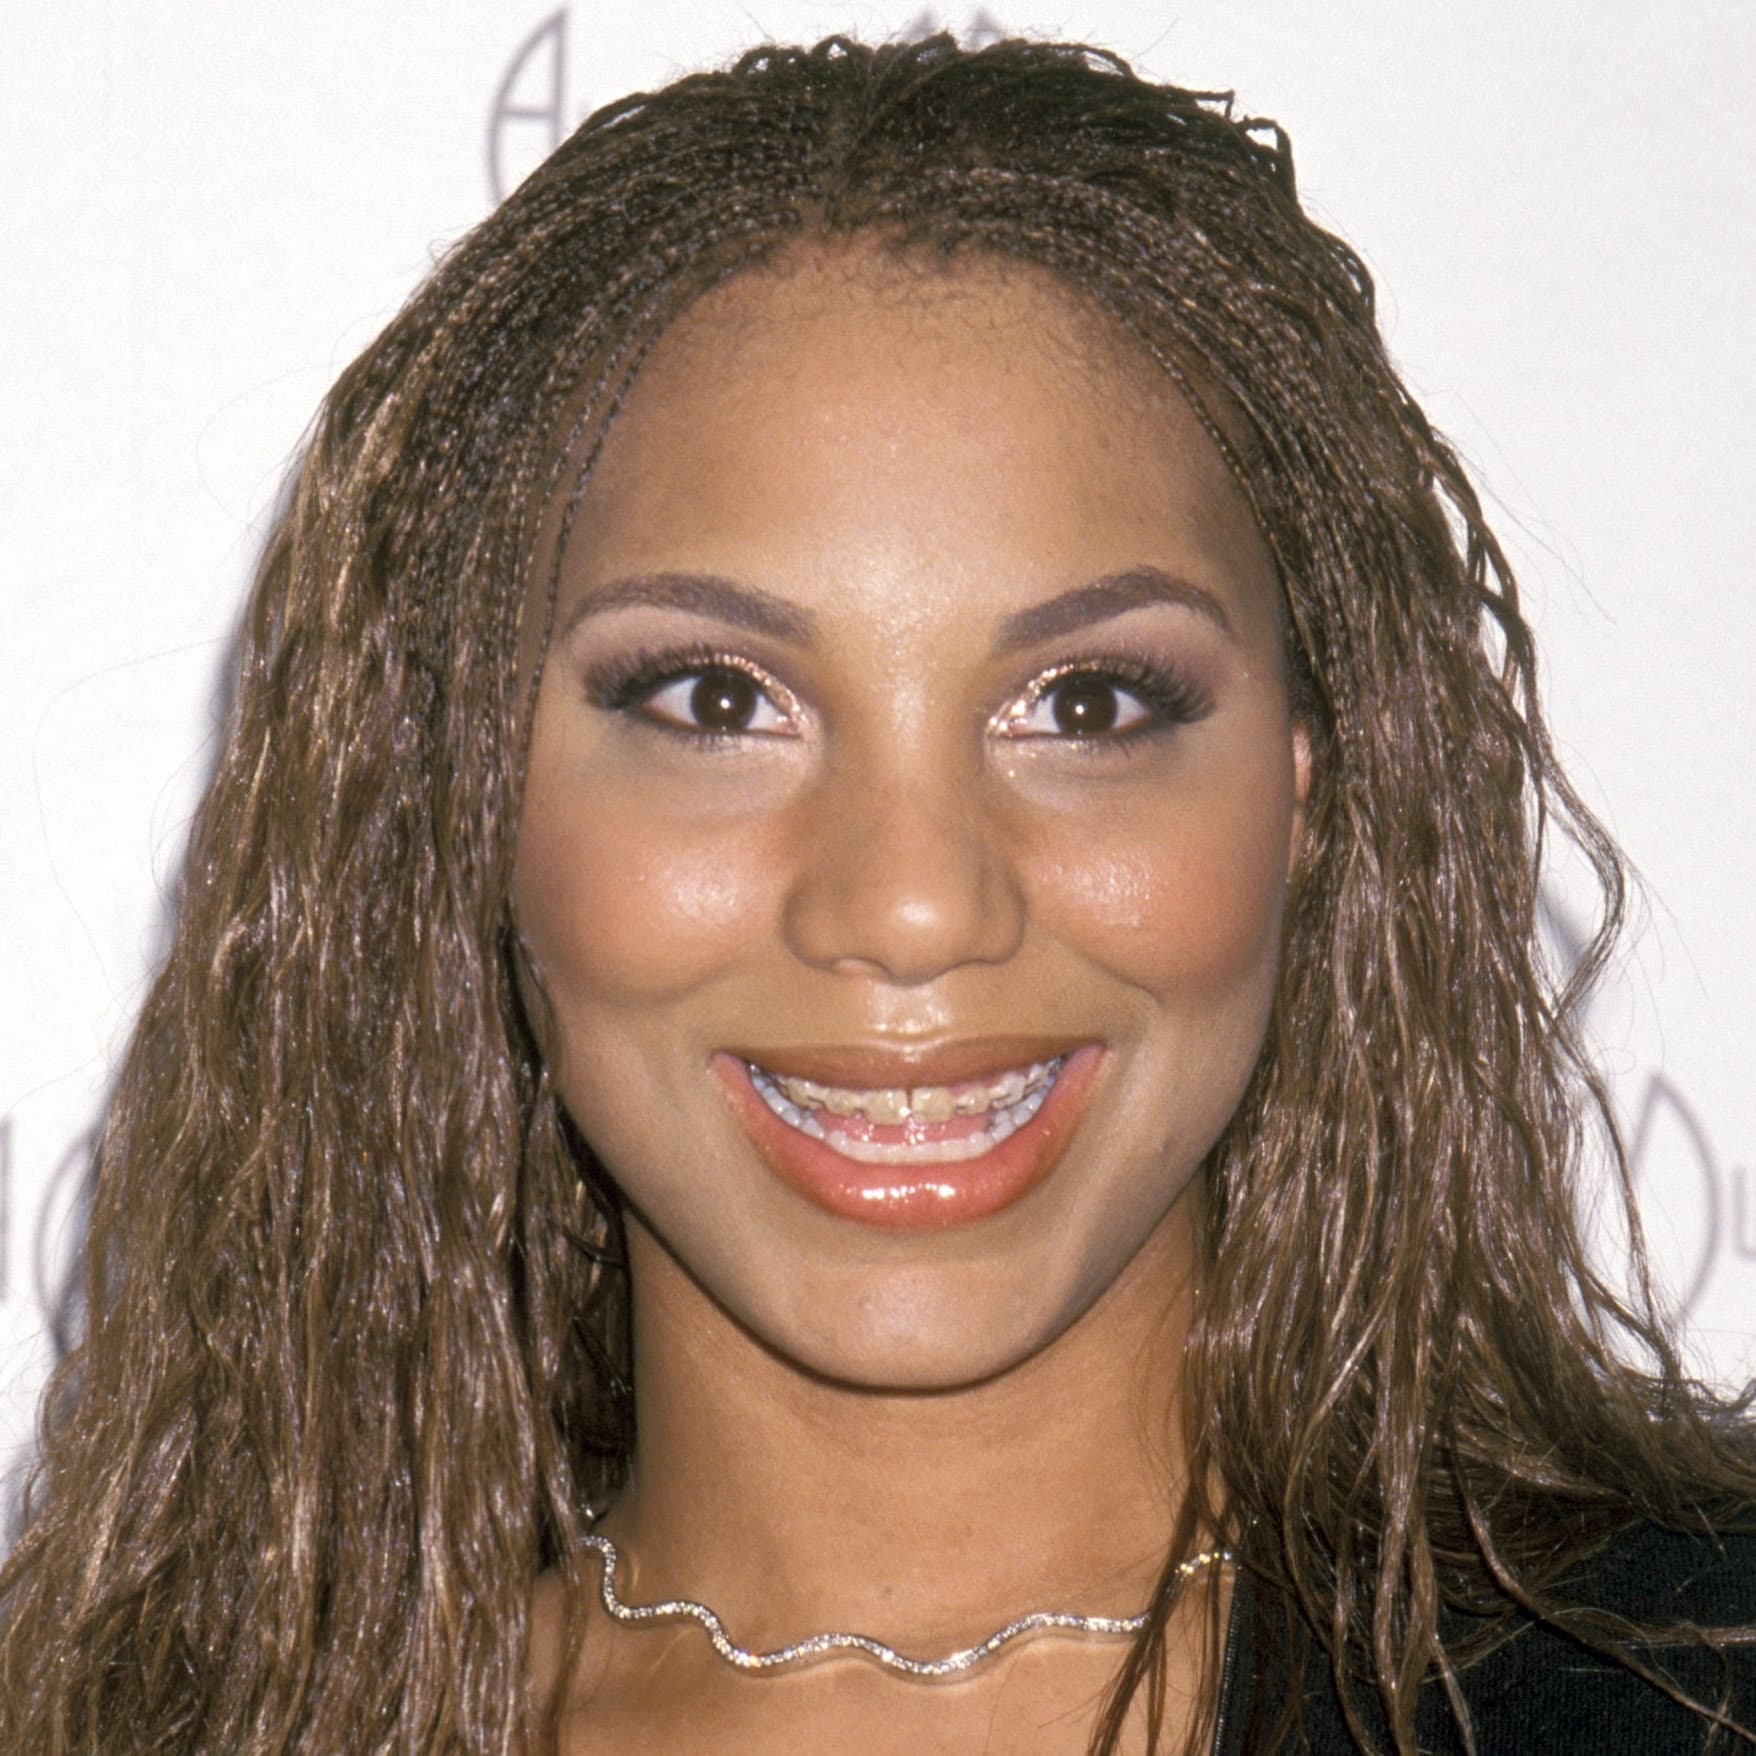 Evelyn Braxton Before Plastic Surgery photo - 1